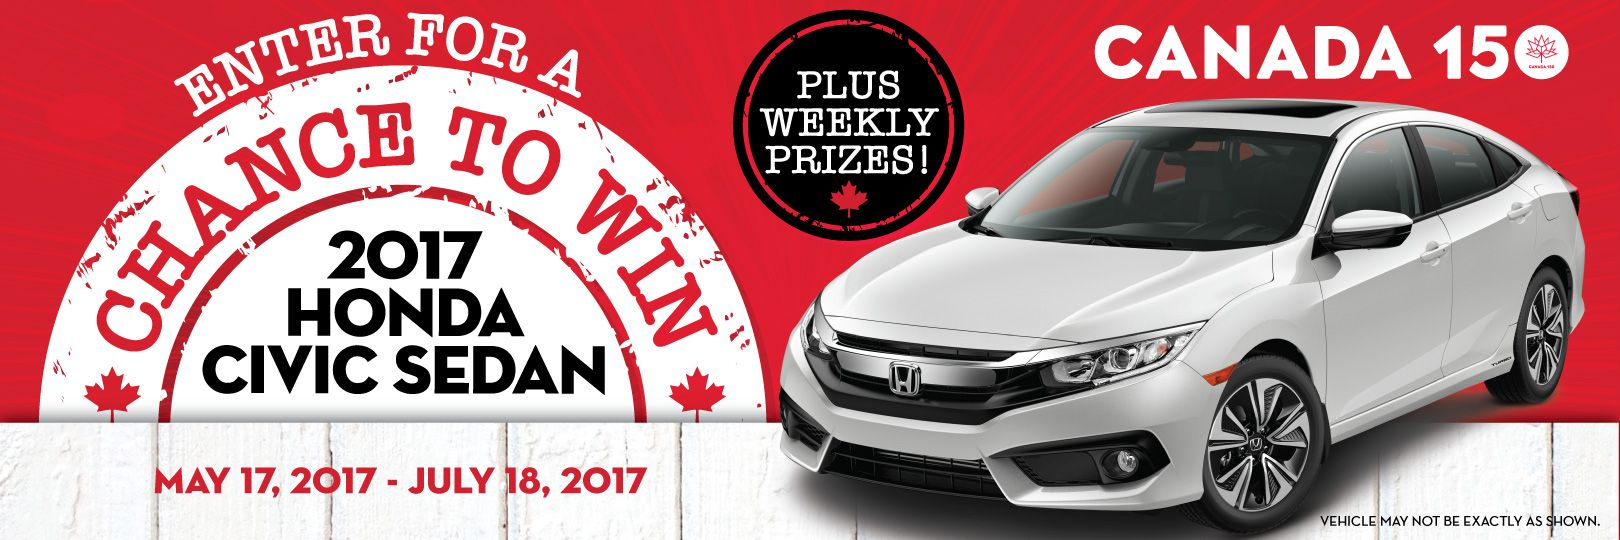 Win A Honda Civic 2017 From The Gianttiger Contest